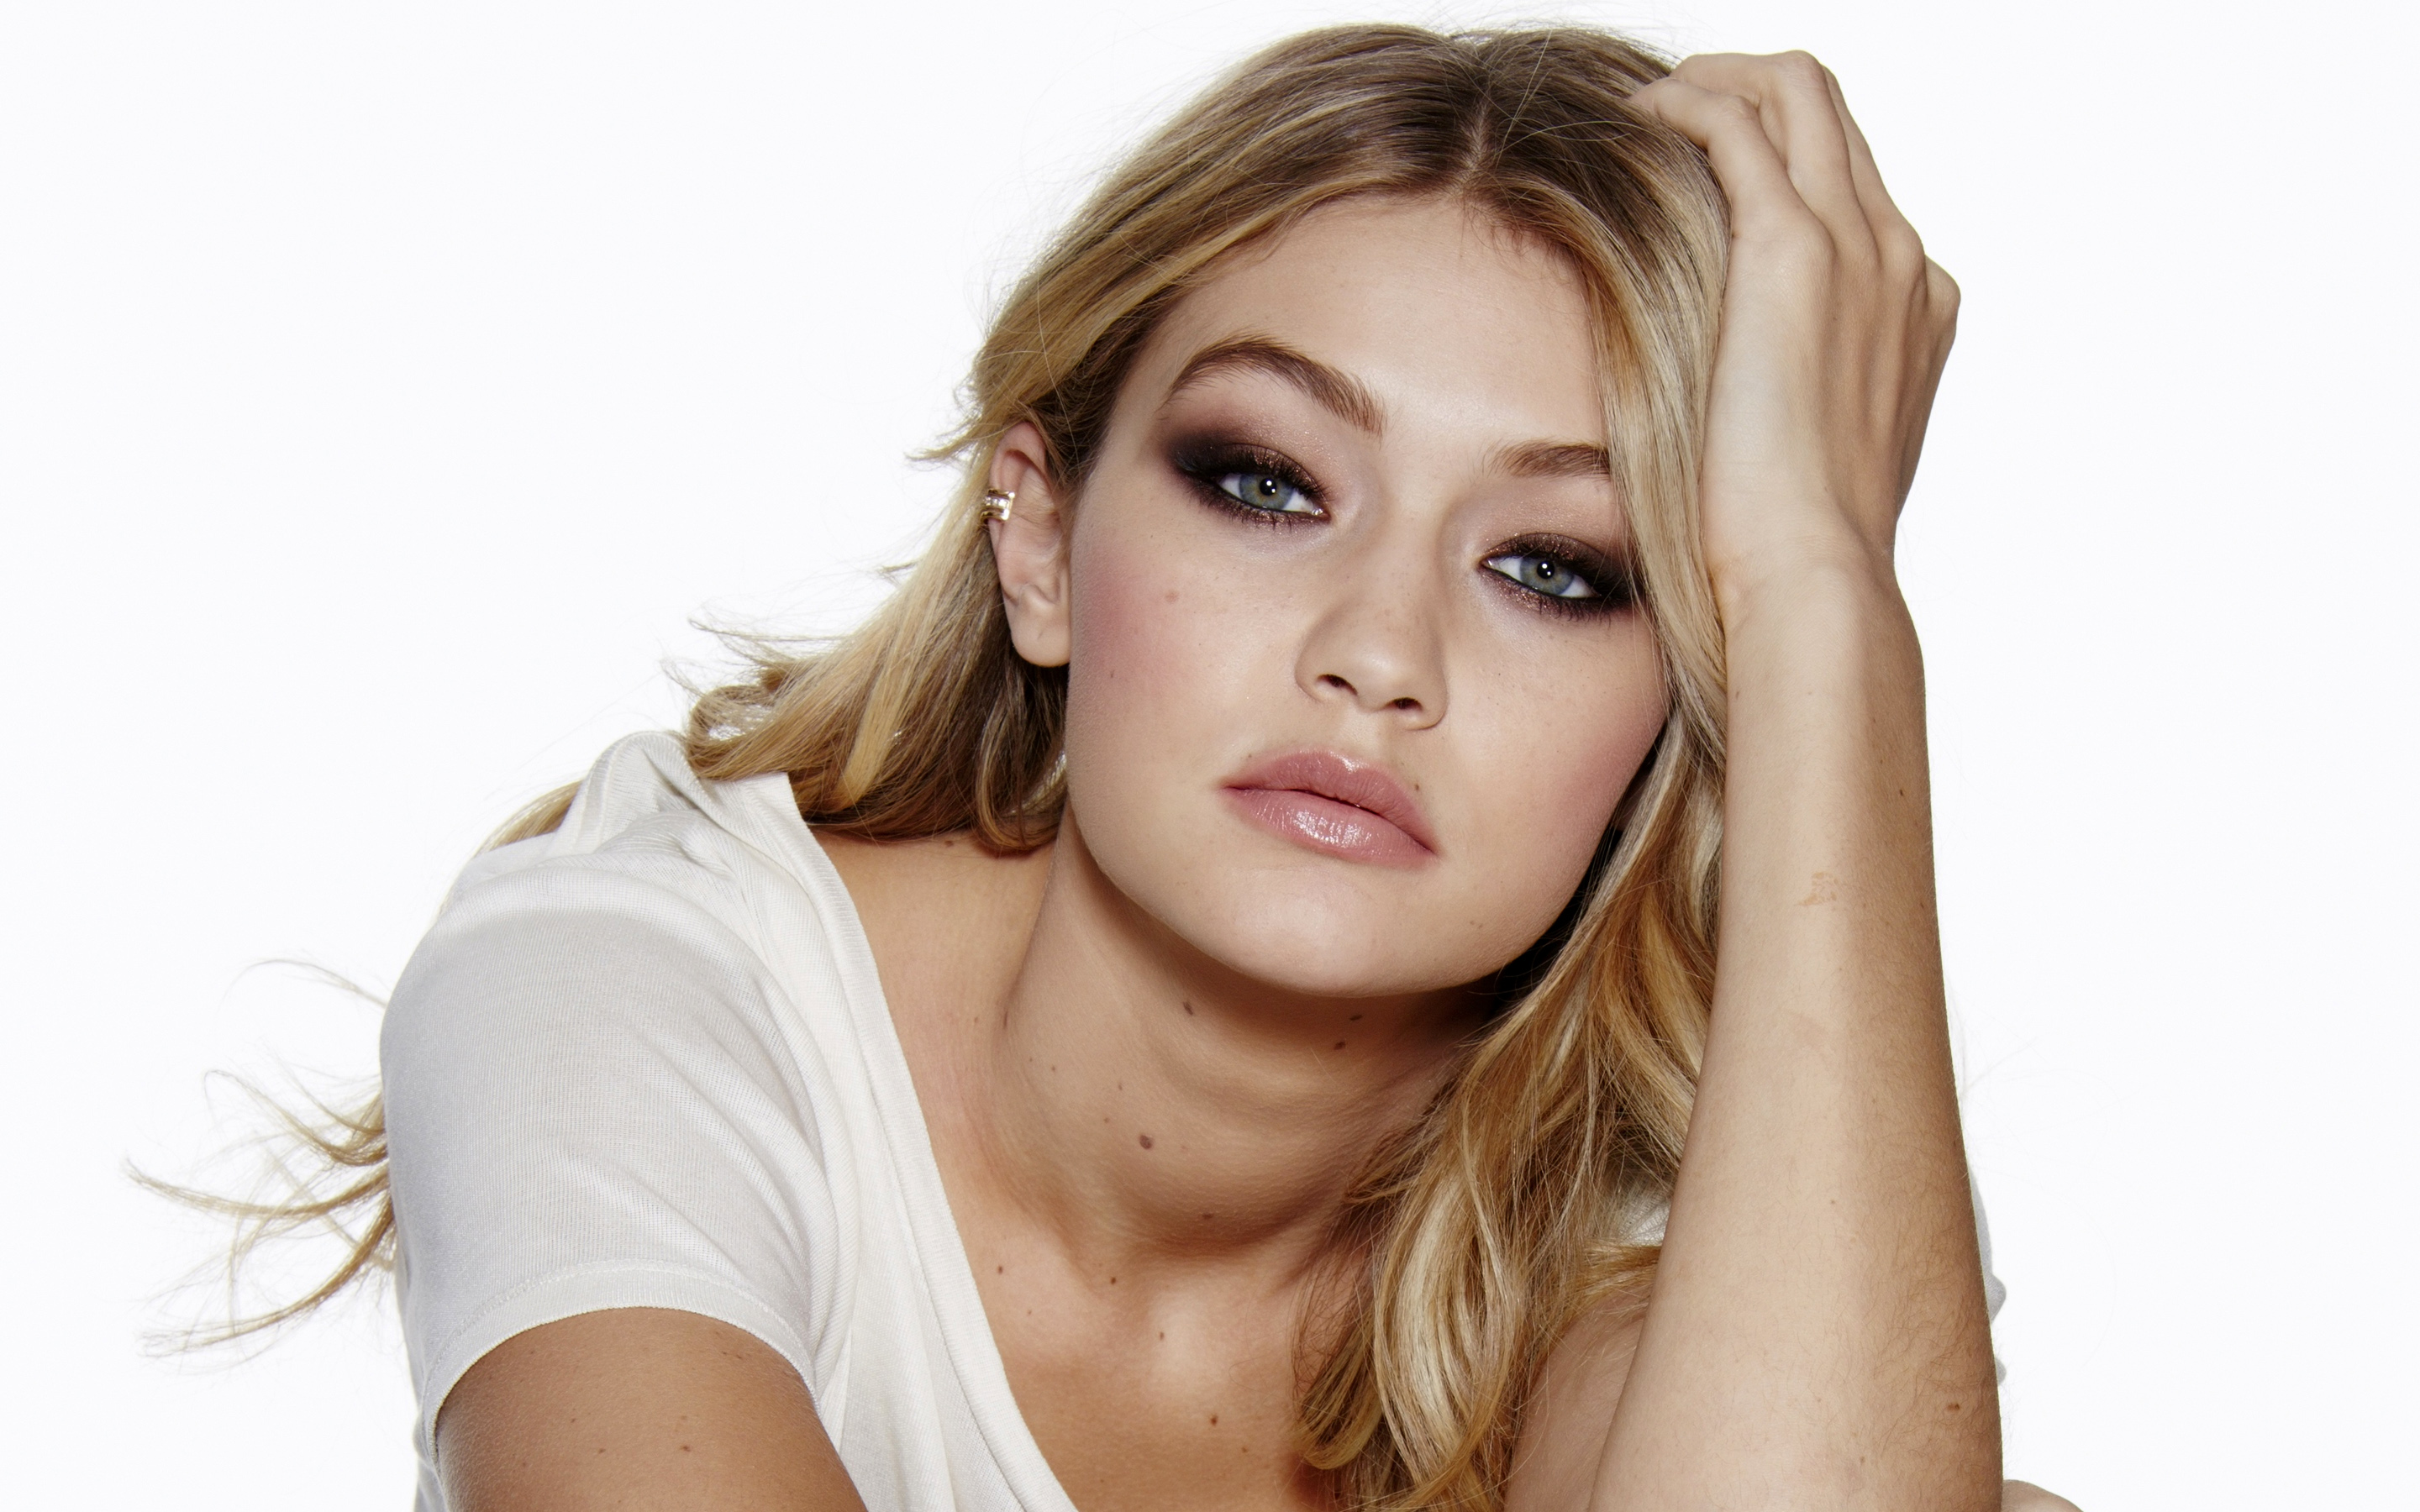 gigi hadid - photo #26